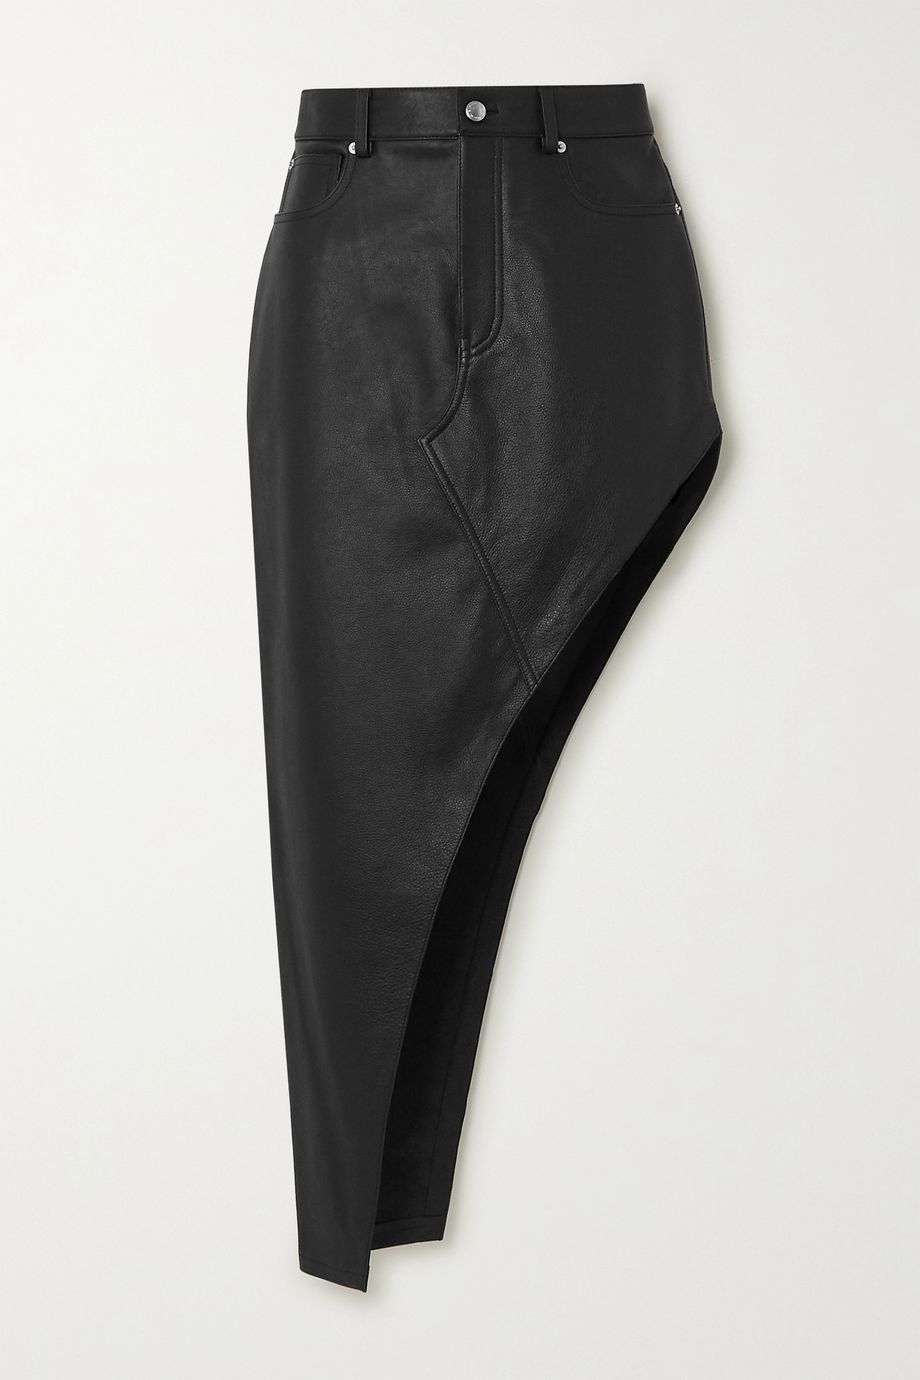 Alexander Wang Asymmetric leather skirt